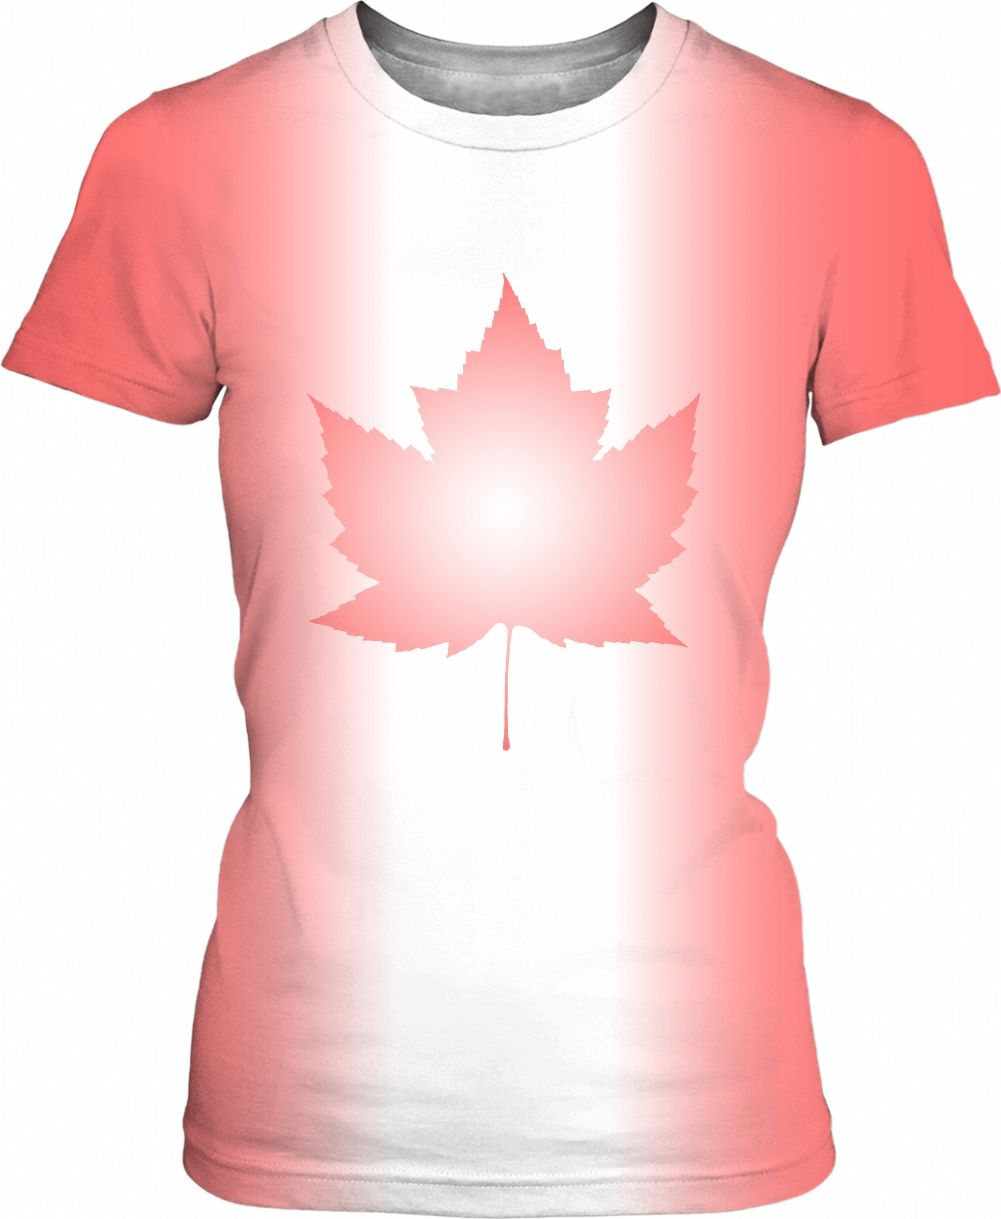 9cef0a501 Canada Shirts & Cute Pink Canada Flag Souvenirs Collection Just Added!  https